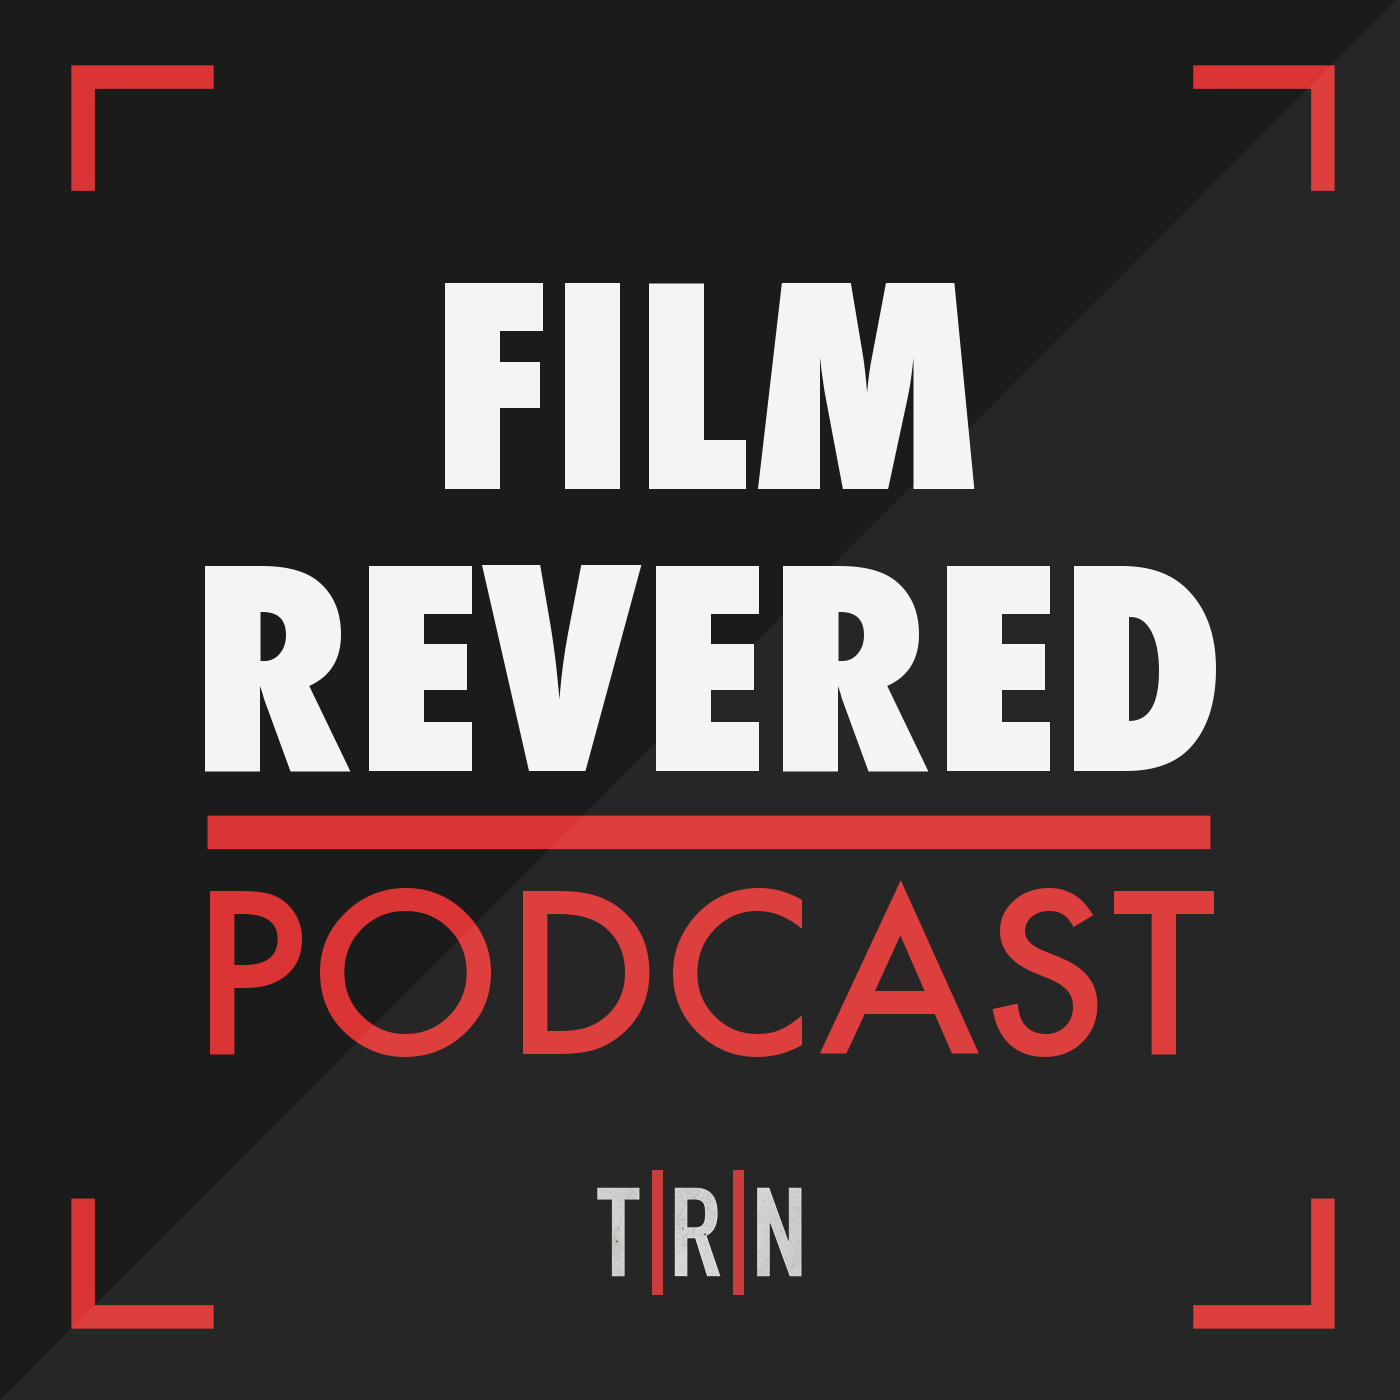 Film Revered Podcast - The bi-weekly Film Revered Podcast featured interviews with film and television industry professionals.• Producer and Host• Responsible for maintaining the company website.• Managed the company's social media presence• Acquired sponsors for the podcast• Scheduled guest interviews• Recorded/edited interview sessionsMore Information